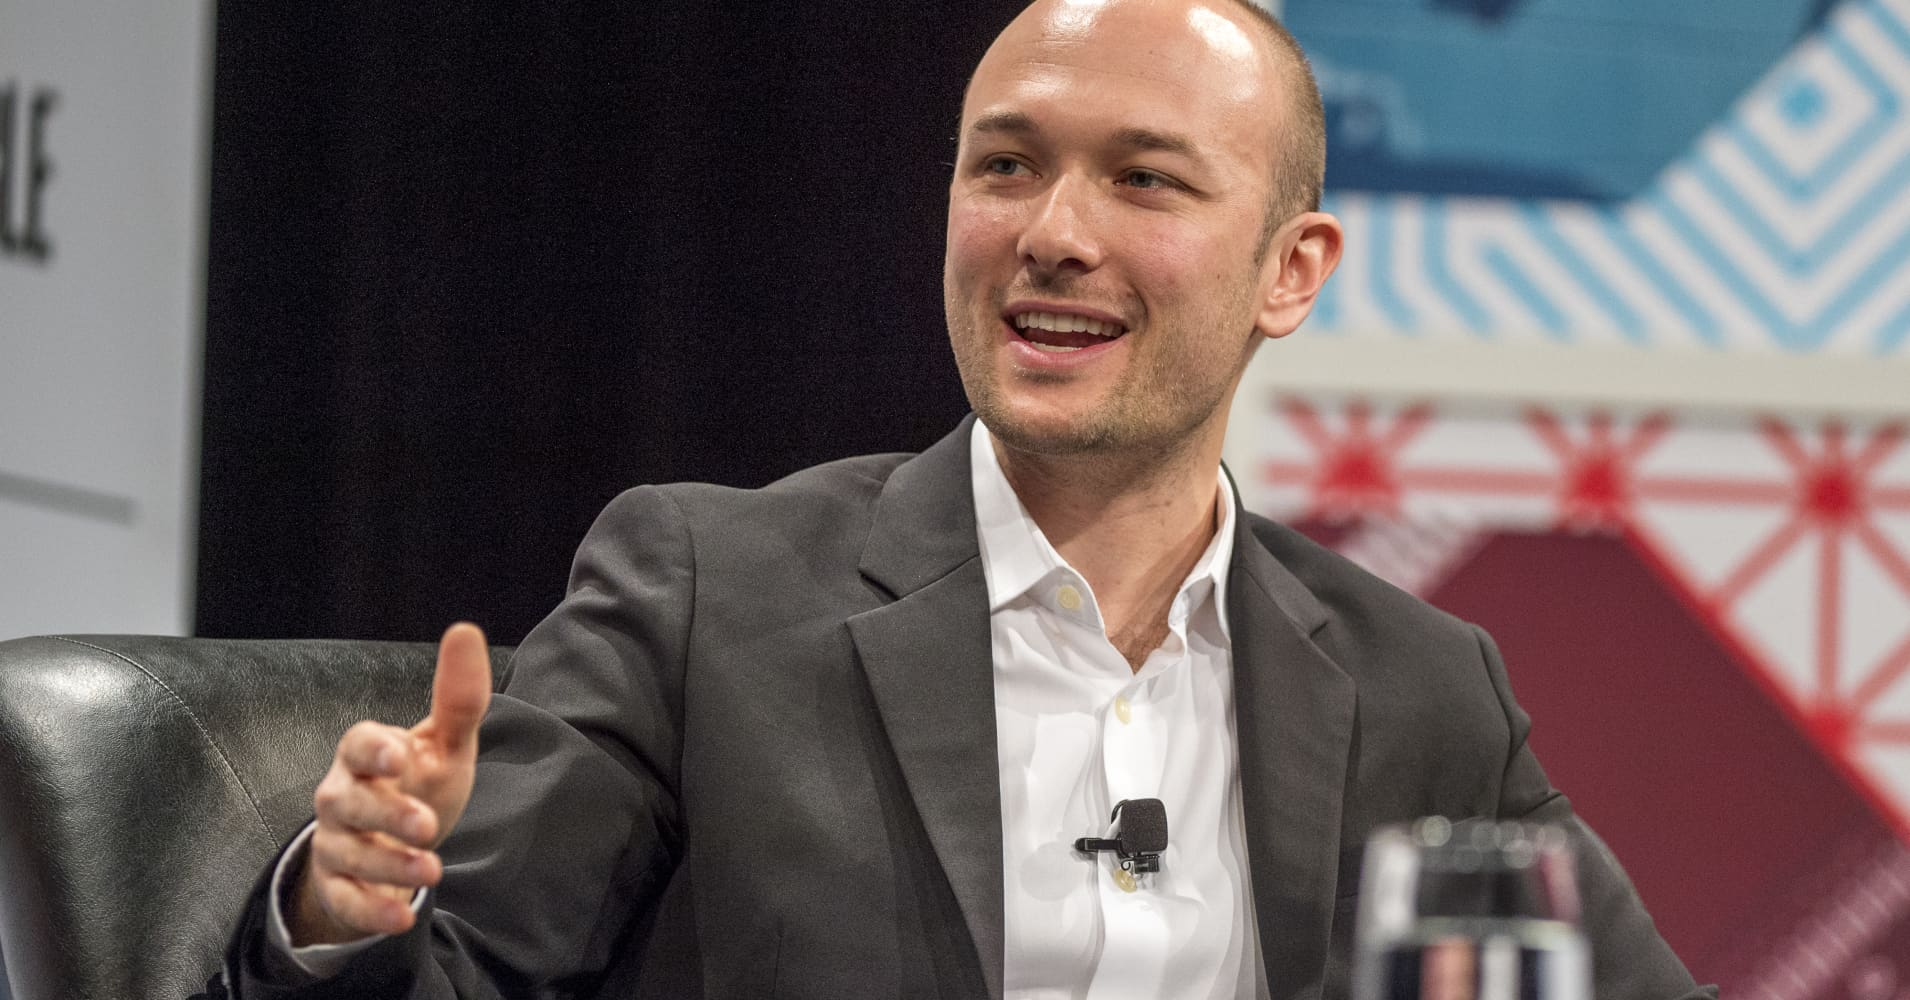 Here's who stands to get rich from Lyft's IPO